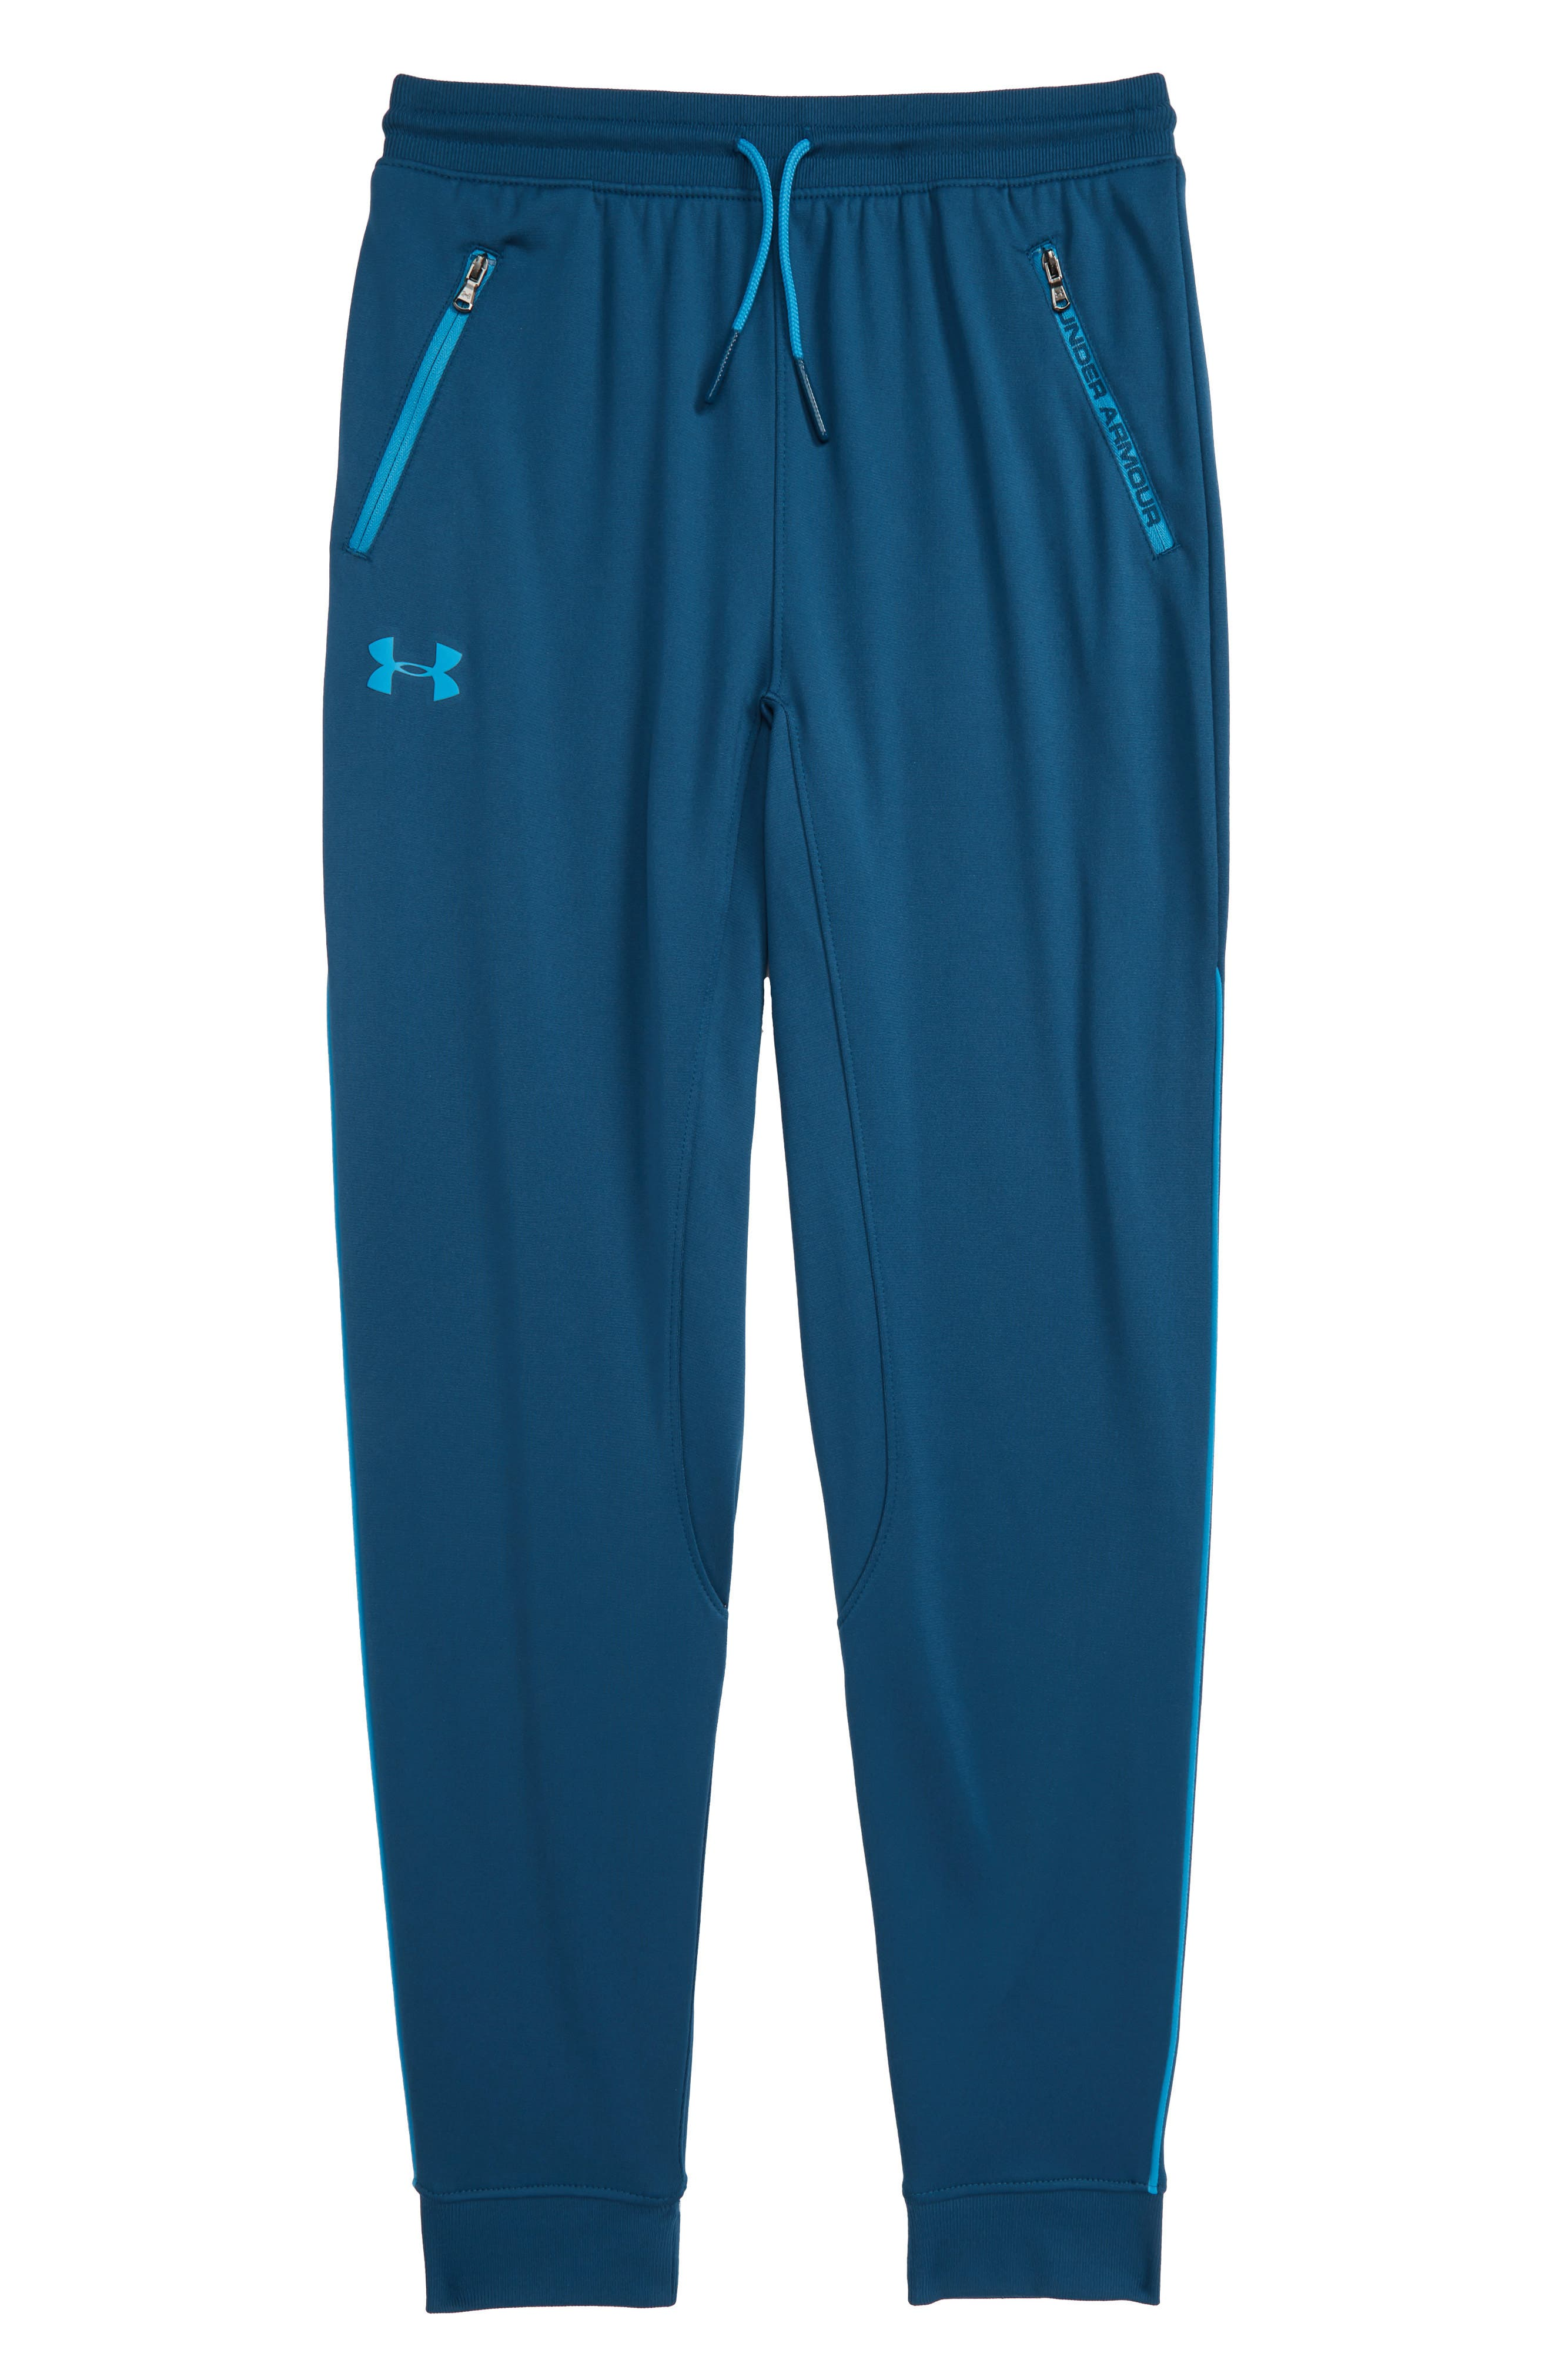 UNDER ARMOUR, Pennant Tapered Sweatpants, Main thumbnail 1, color, PETROL BLUE/ ETHER BLUE